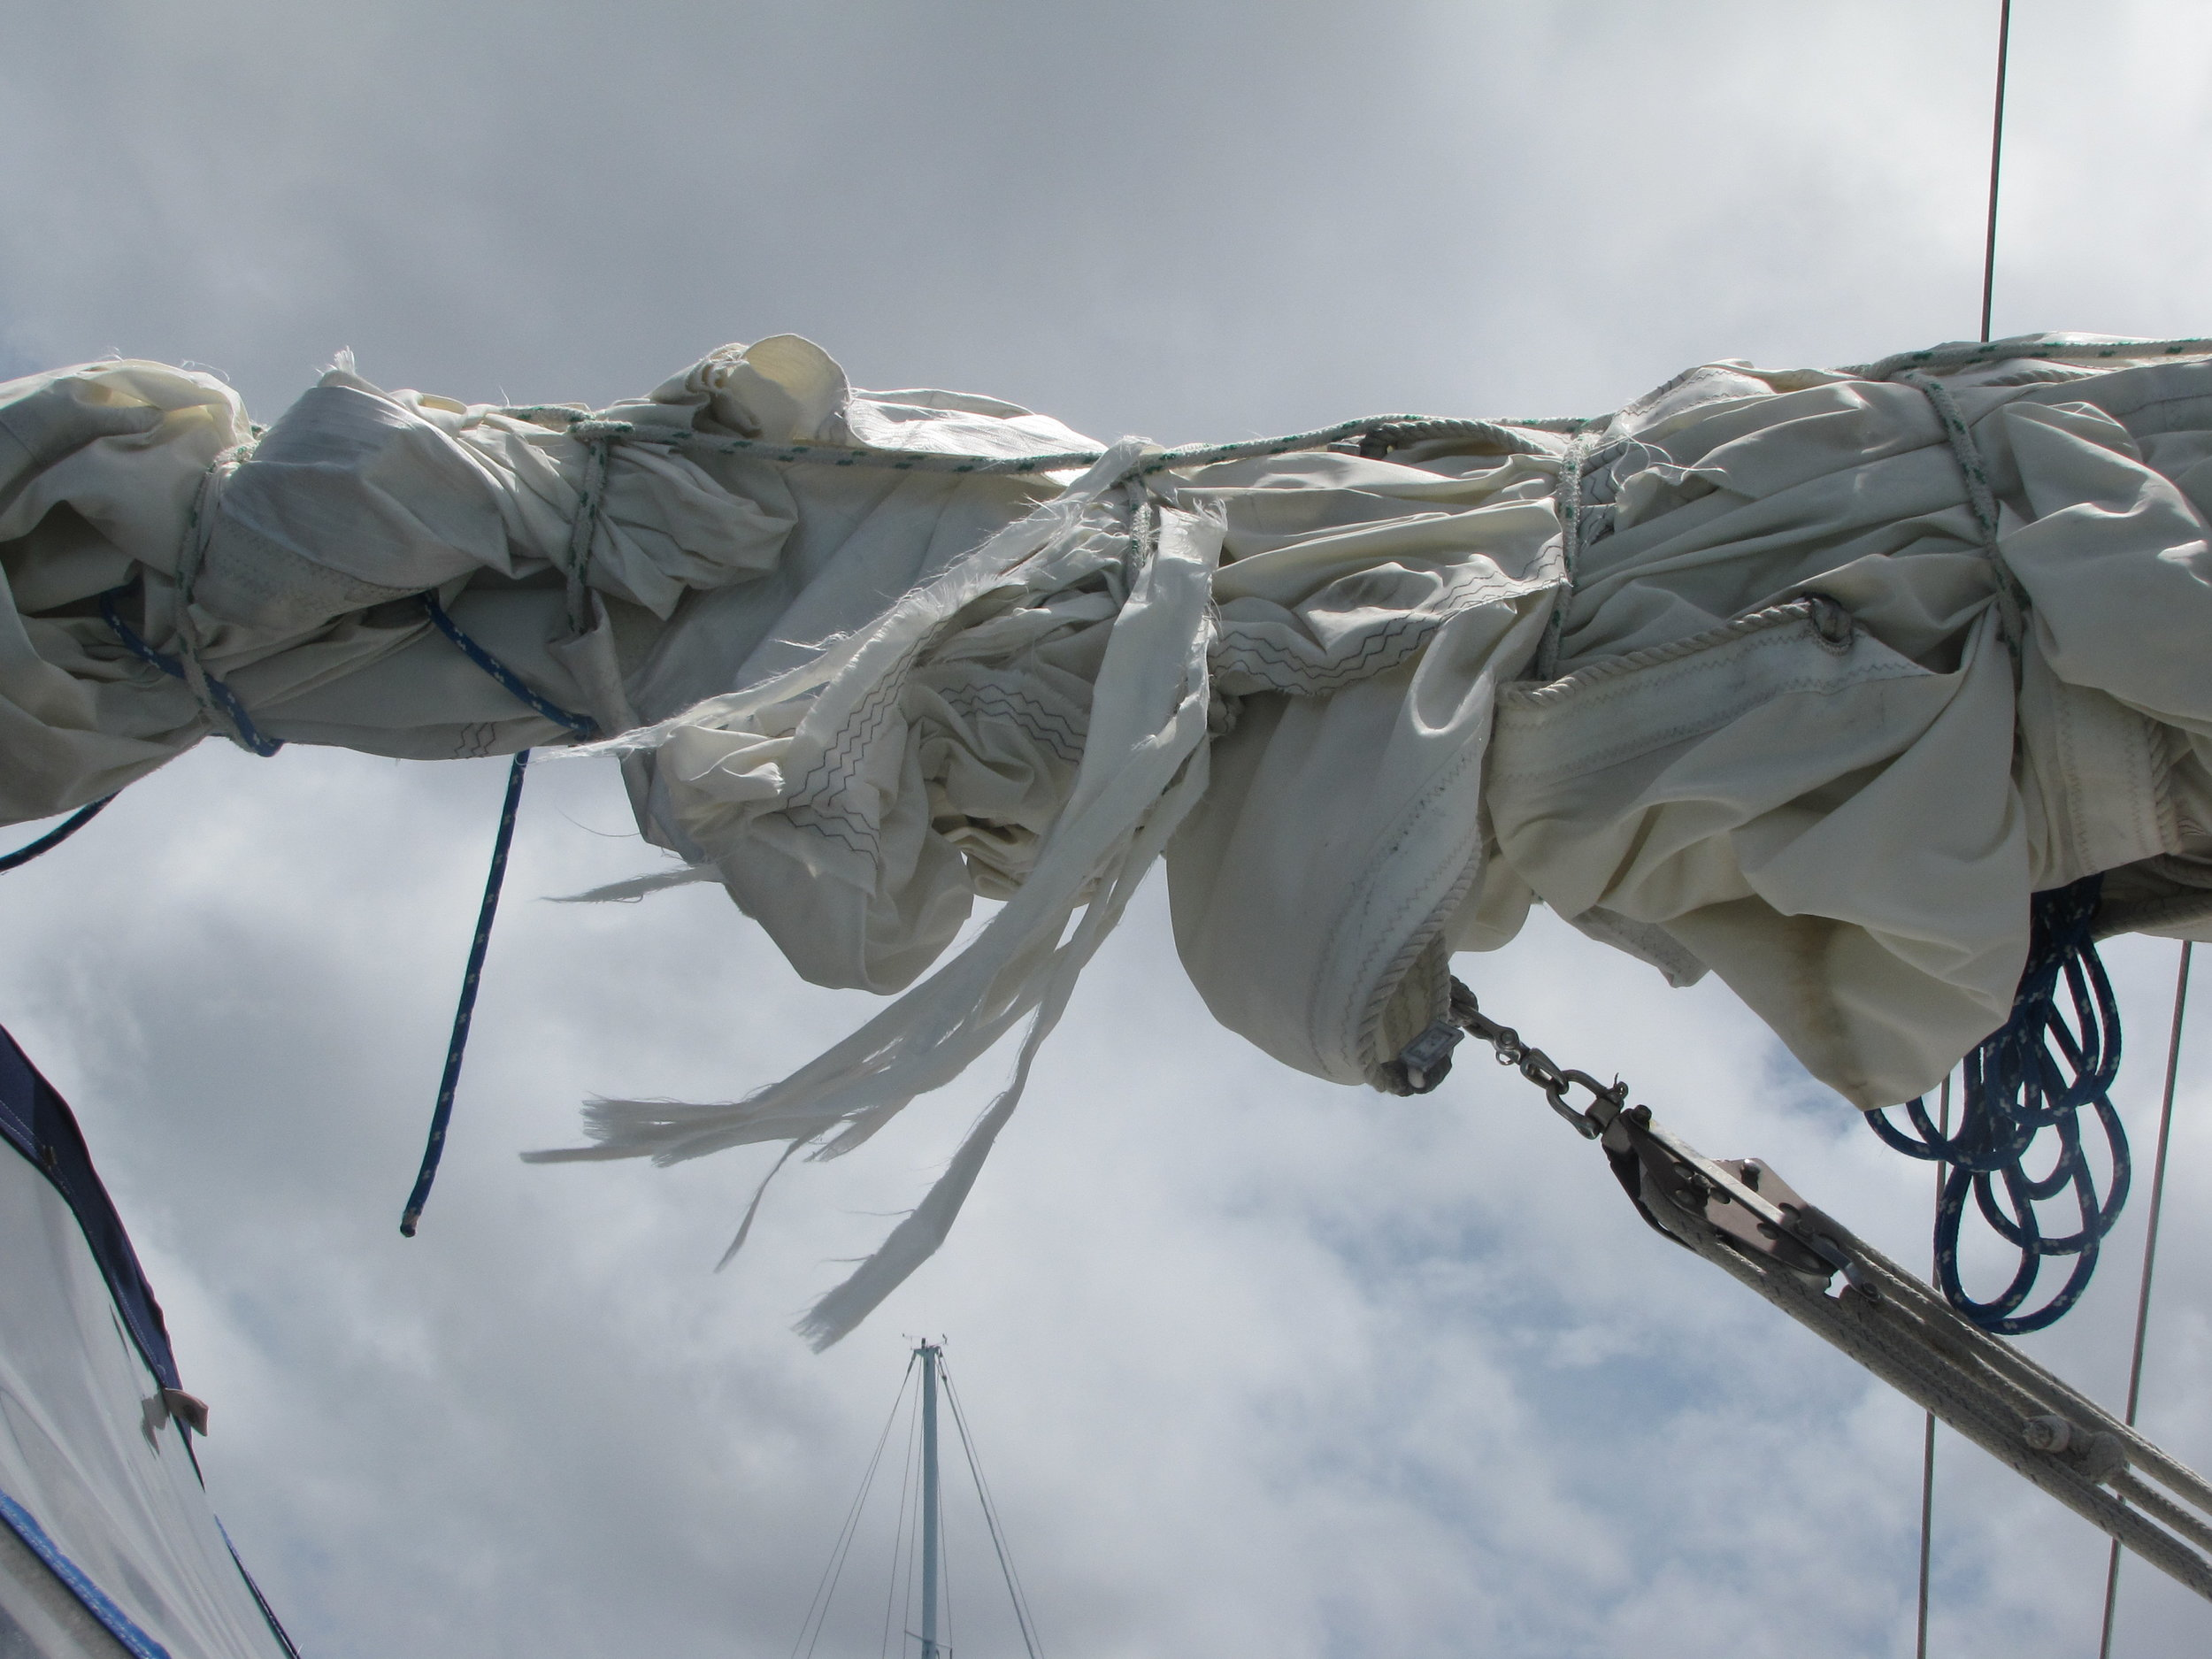 The mainsail in tatters.